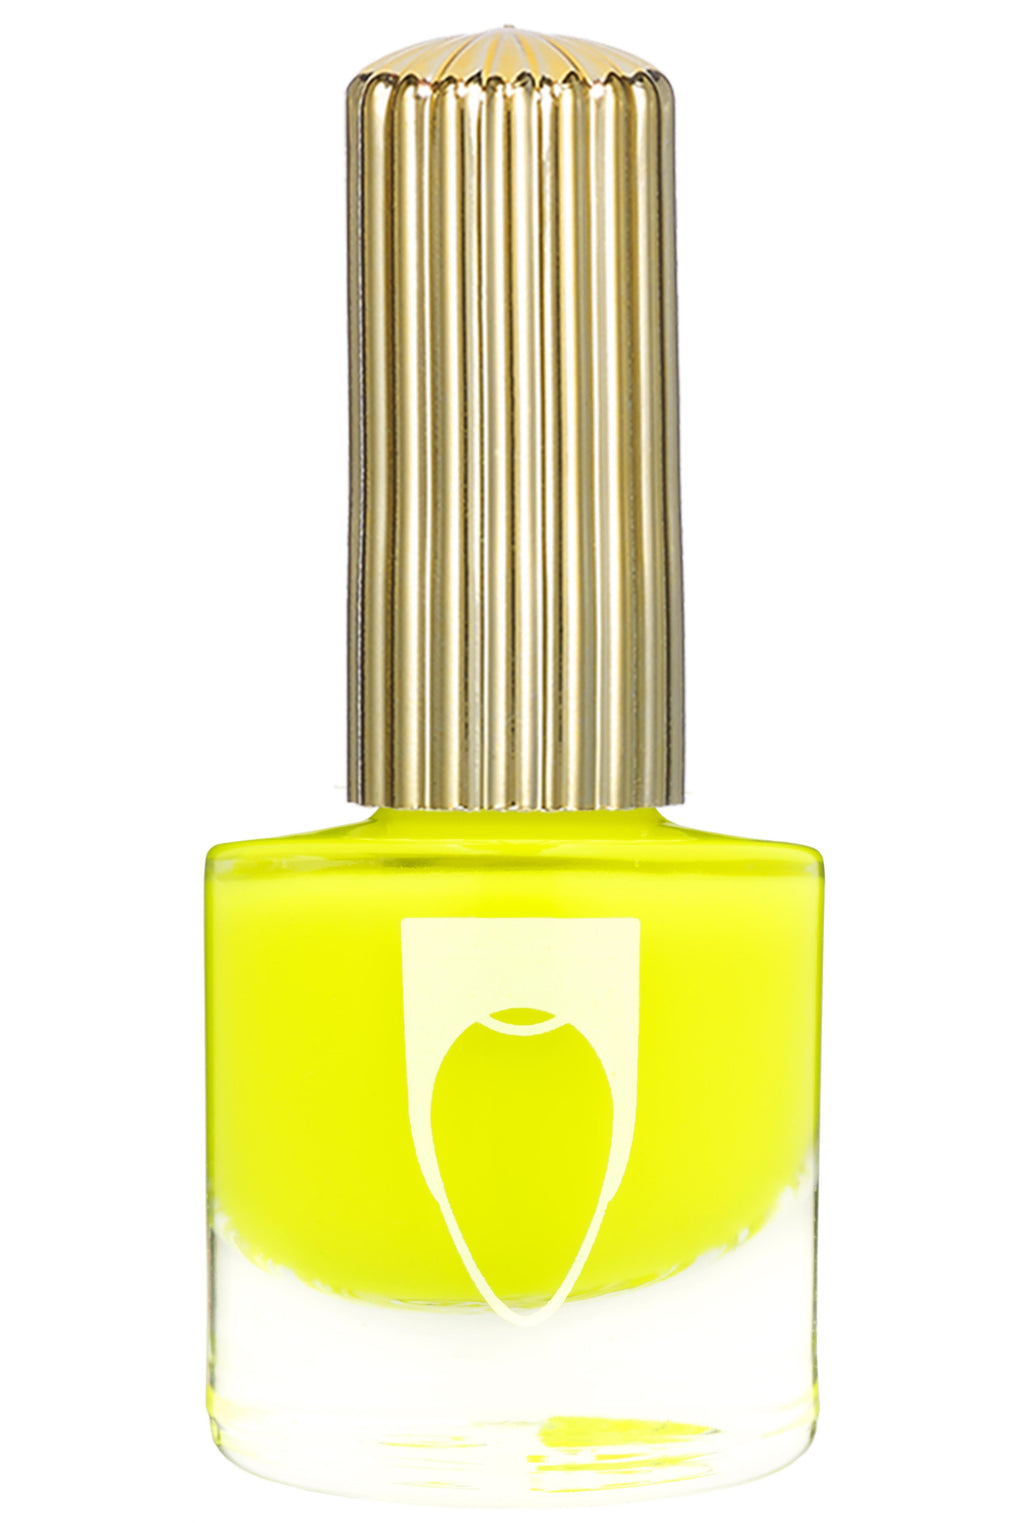 Hella Hilite Floss Gloss nail polish in neon yellow